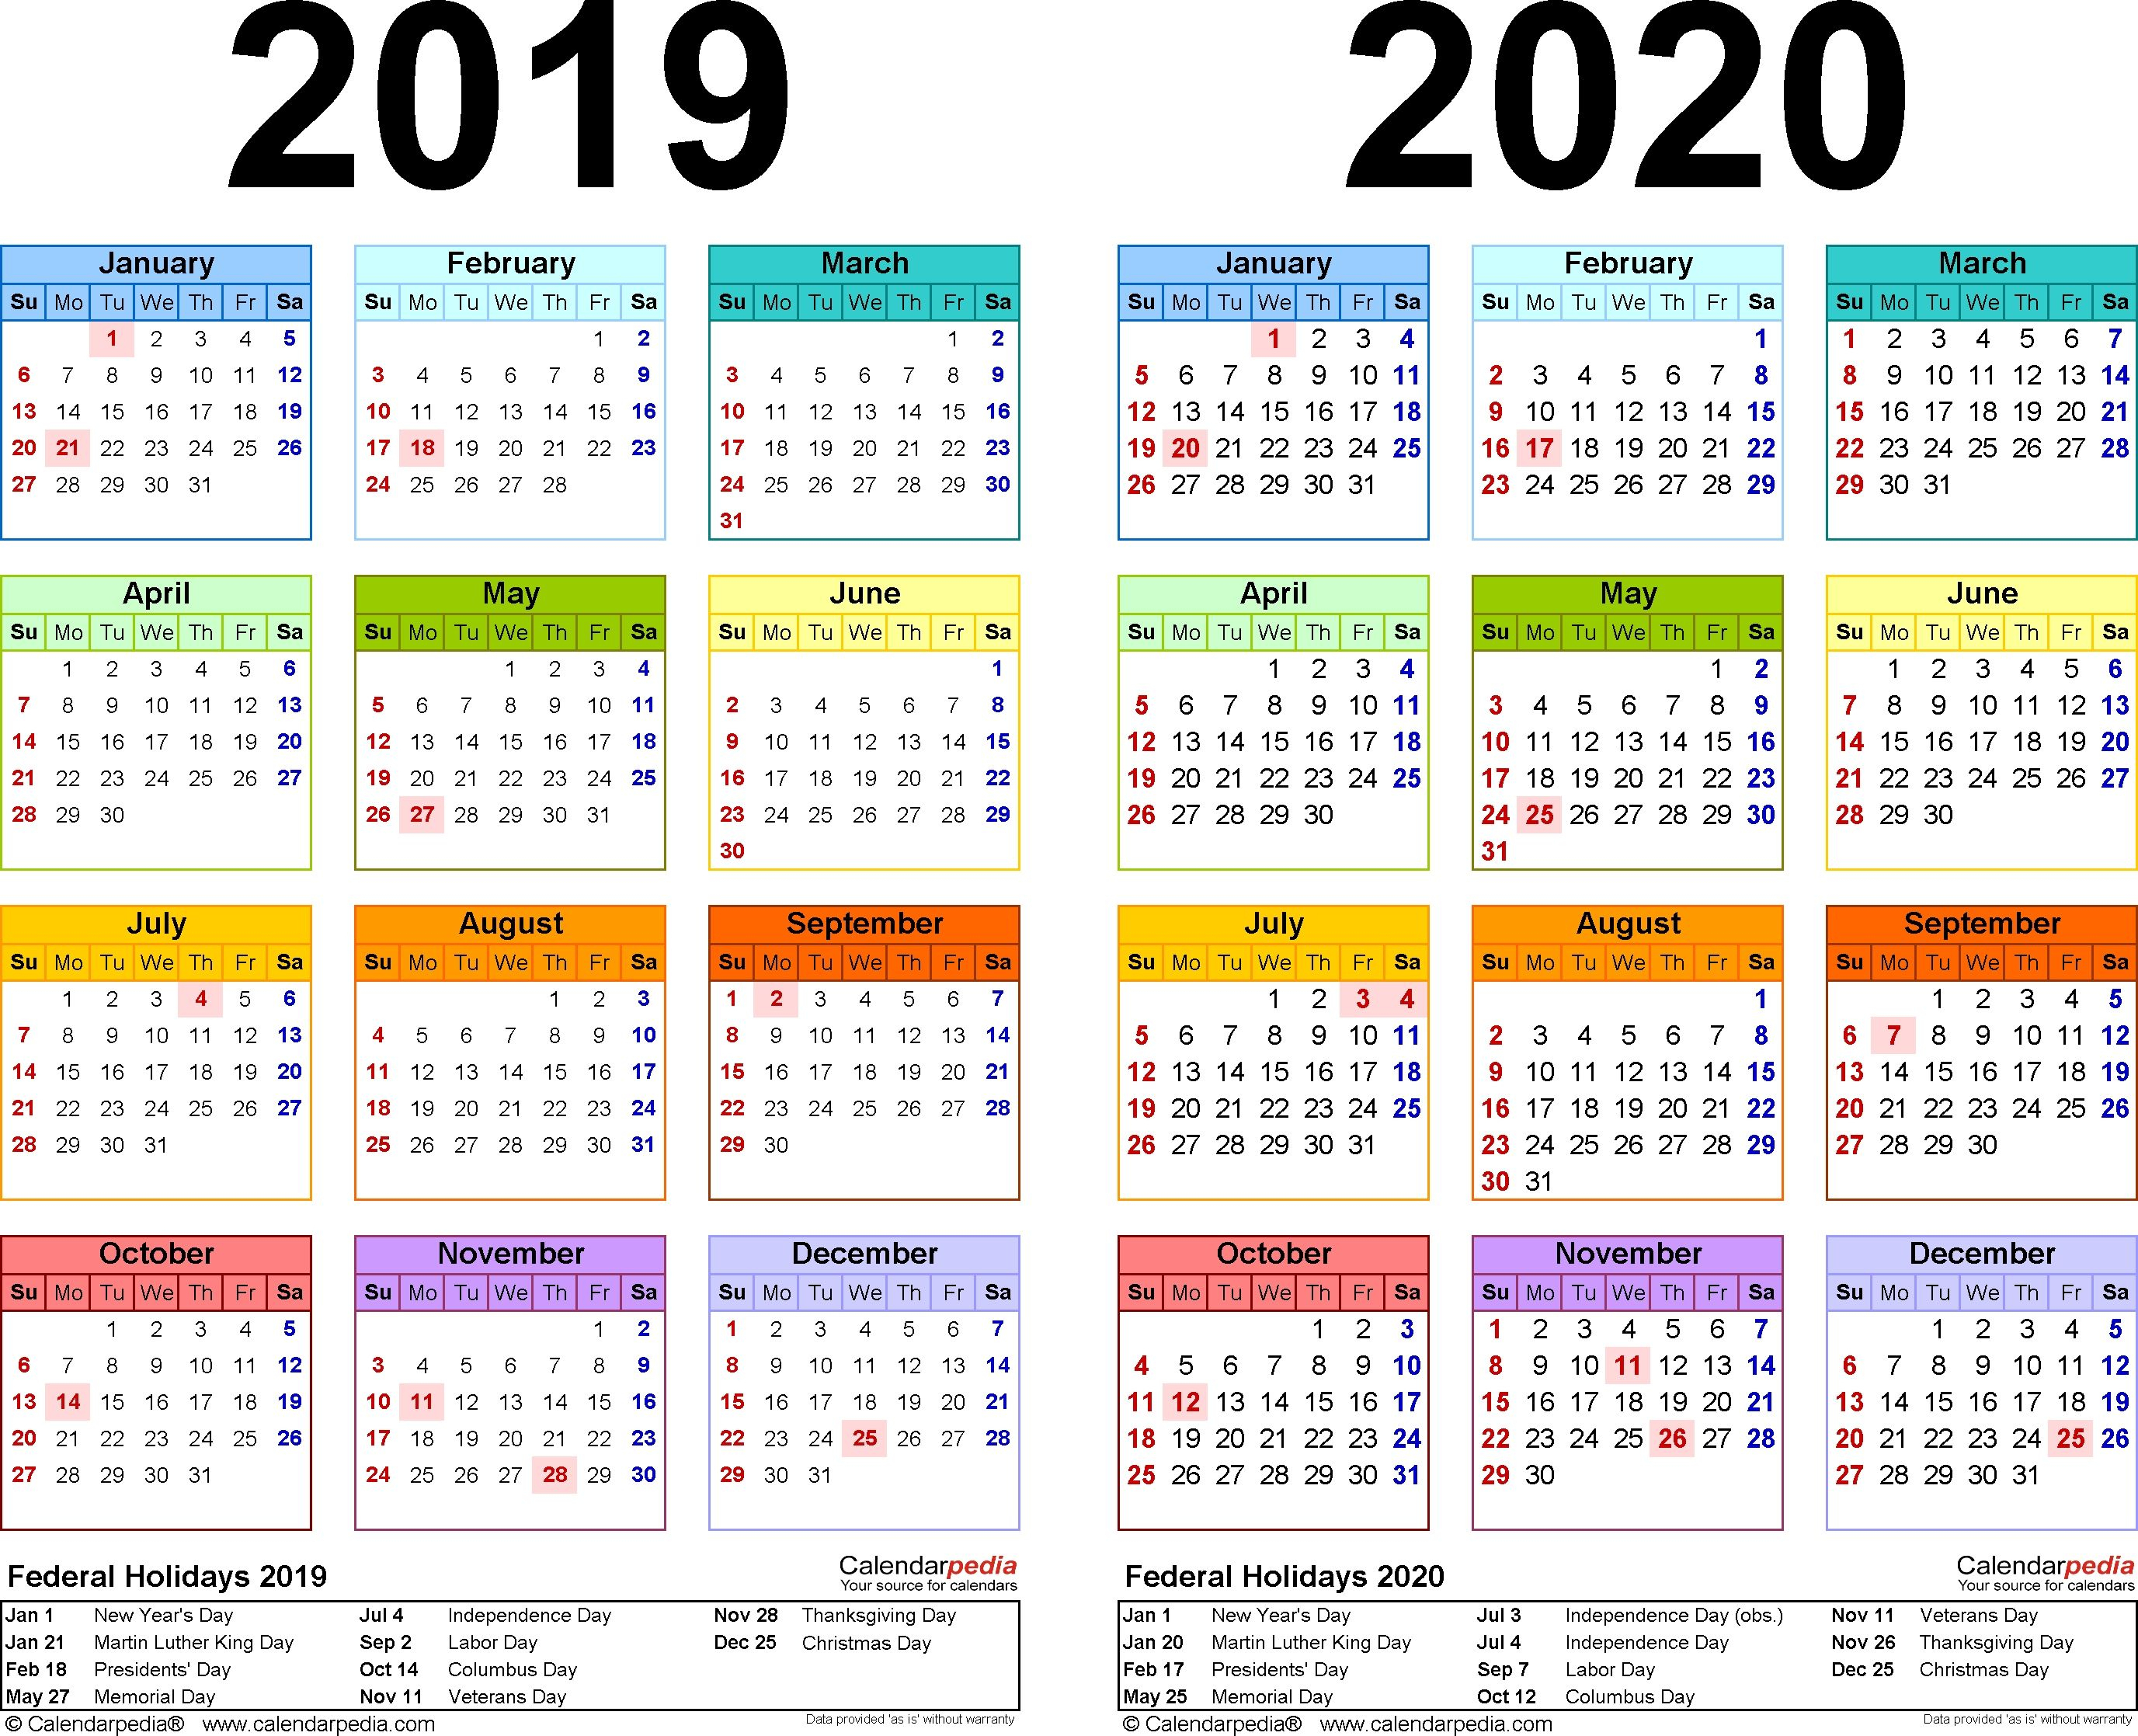 Excel Calendars 2020 - Wpa.wpart.co in Calendar 2020 Zile Libere